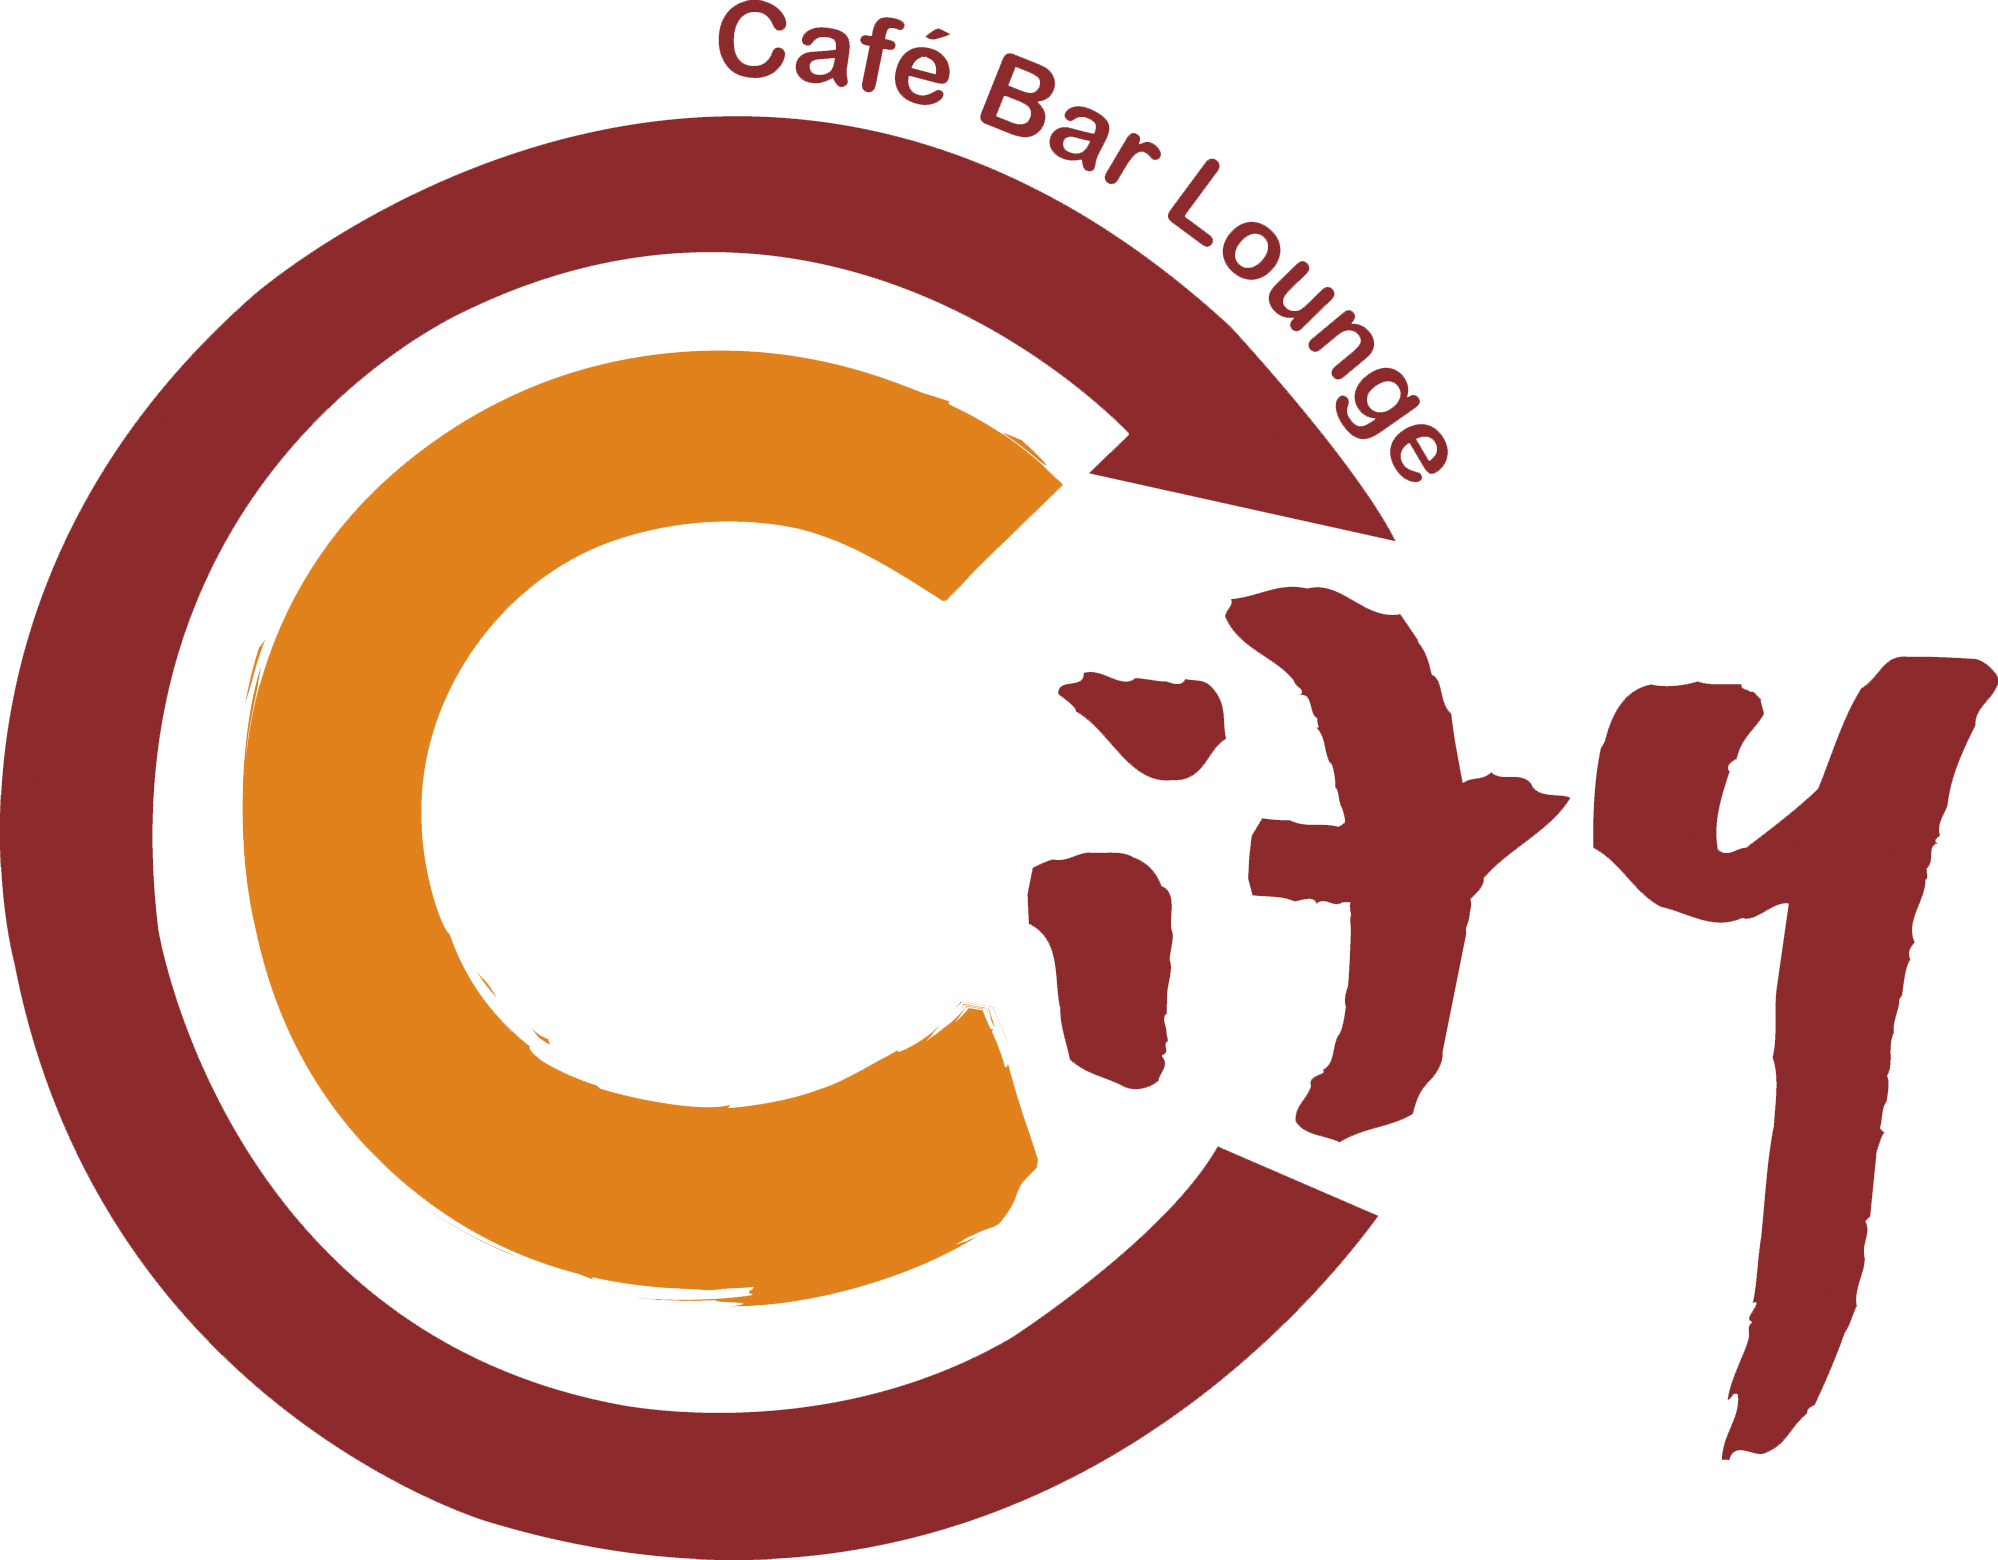 CITY Café Bar Lounge